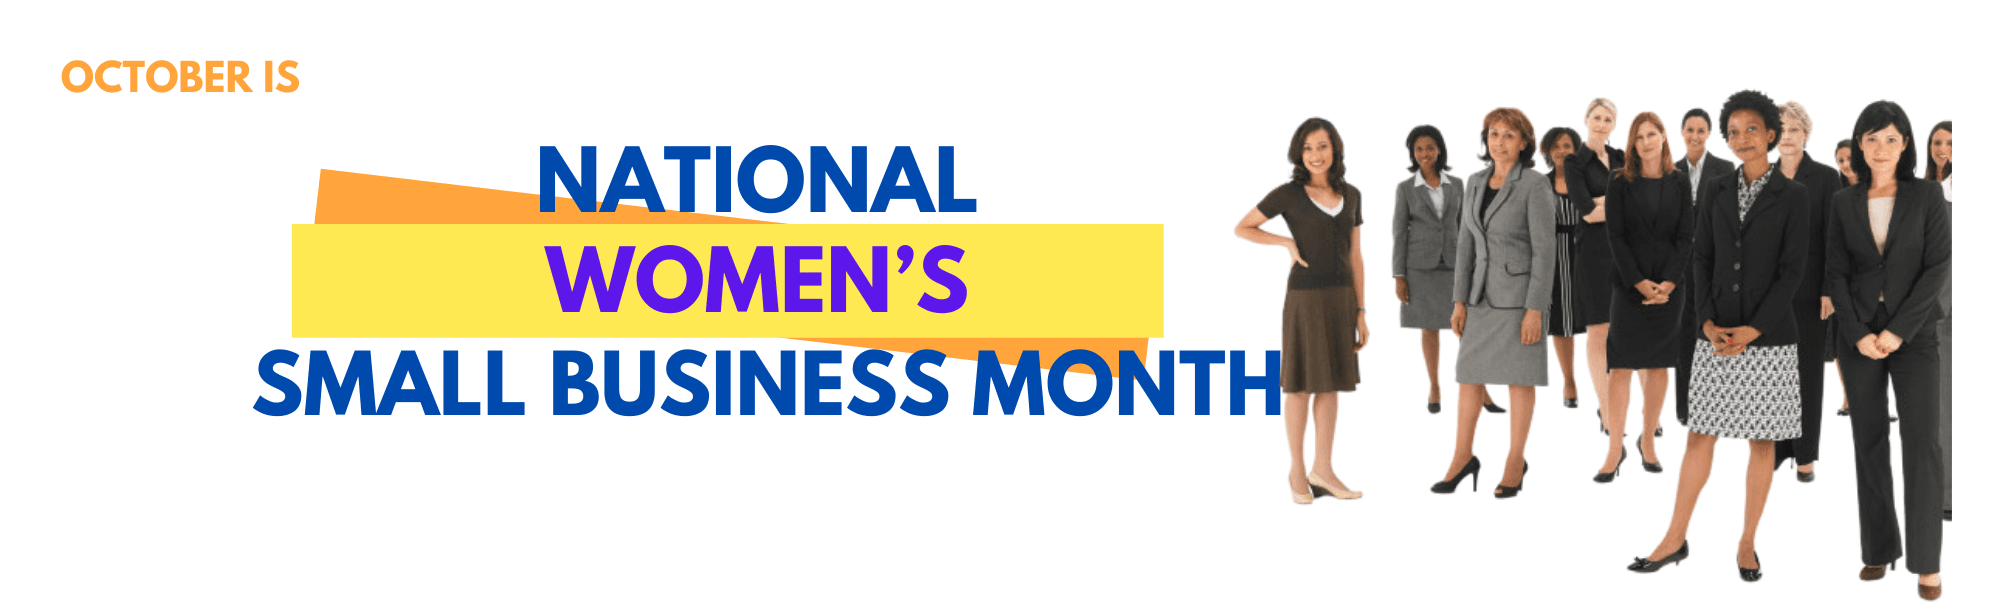 We're celebrating women-owned businesses everywhere, as well as the outstanding progress female